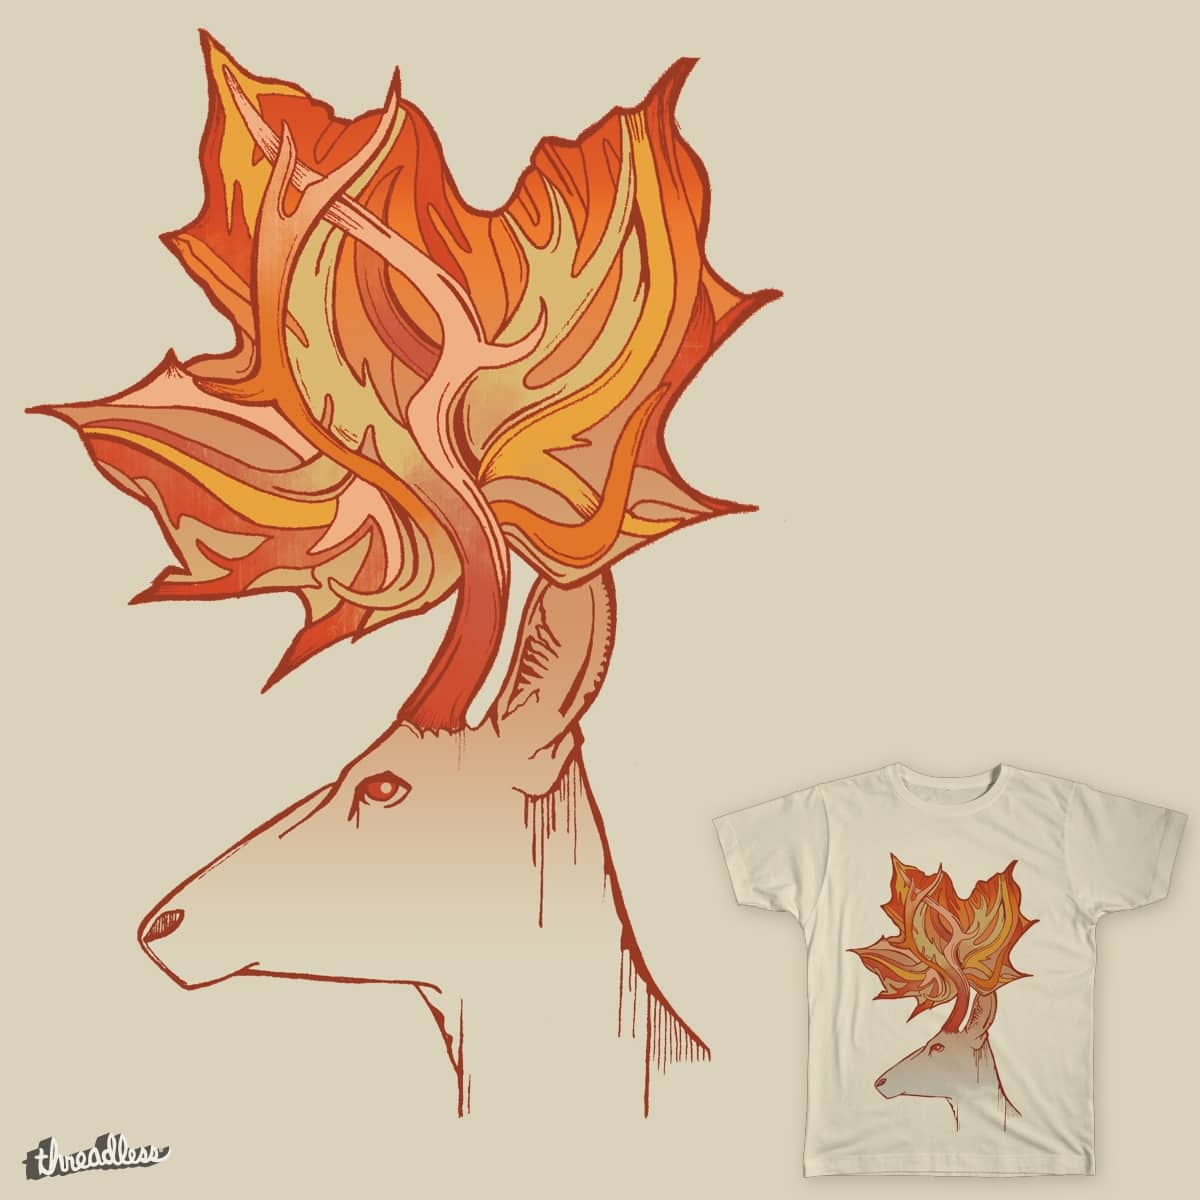 Fall is here, Dear by Ivy_O on Threadless